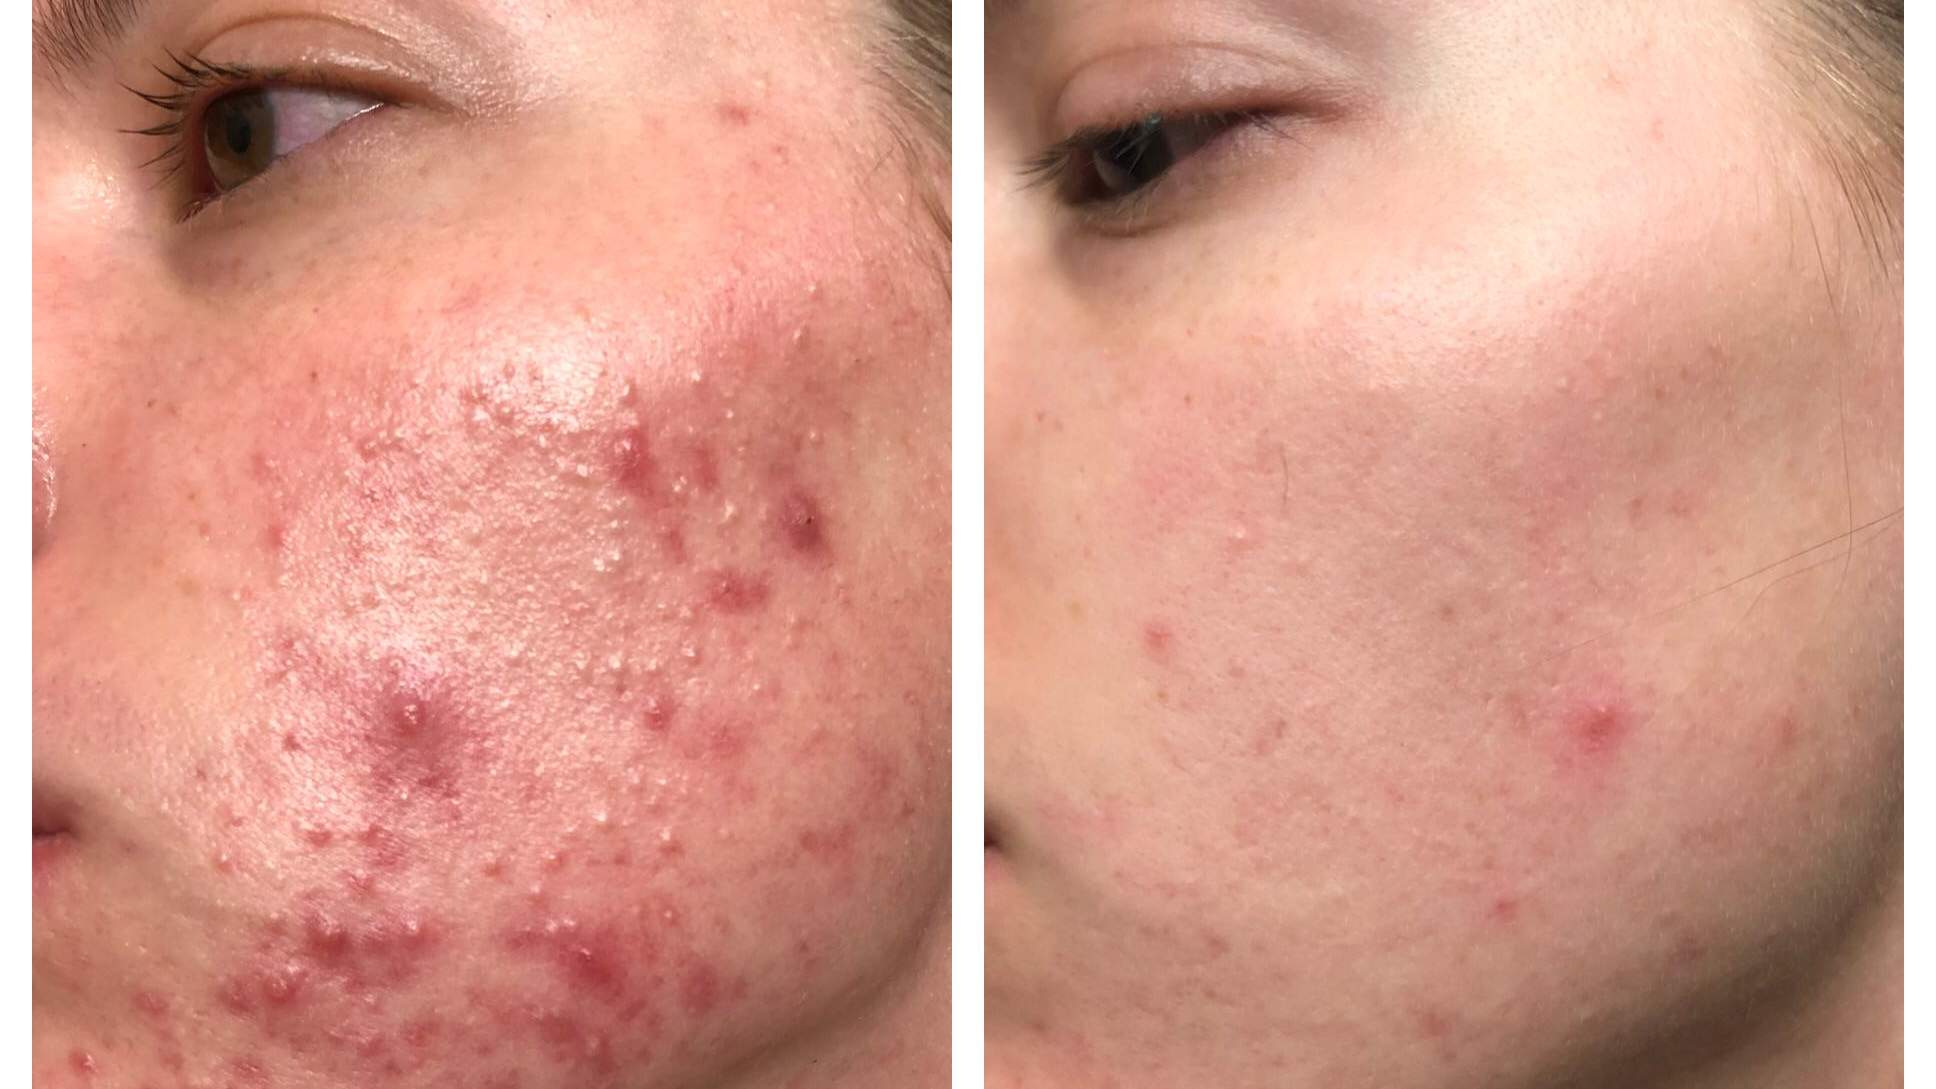 The Exact Skincare Products That Helped Clear This Woman's Cystic Acne in Just 3 Months